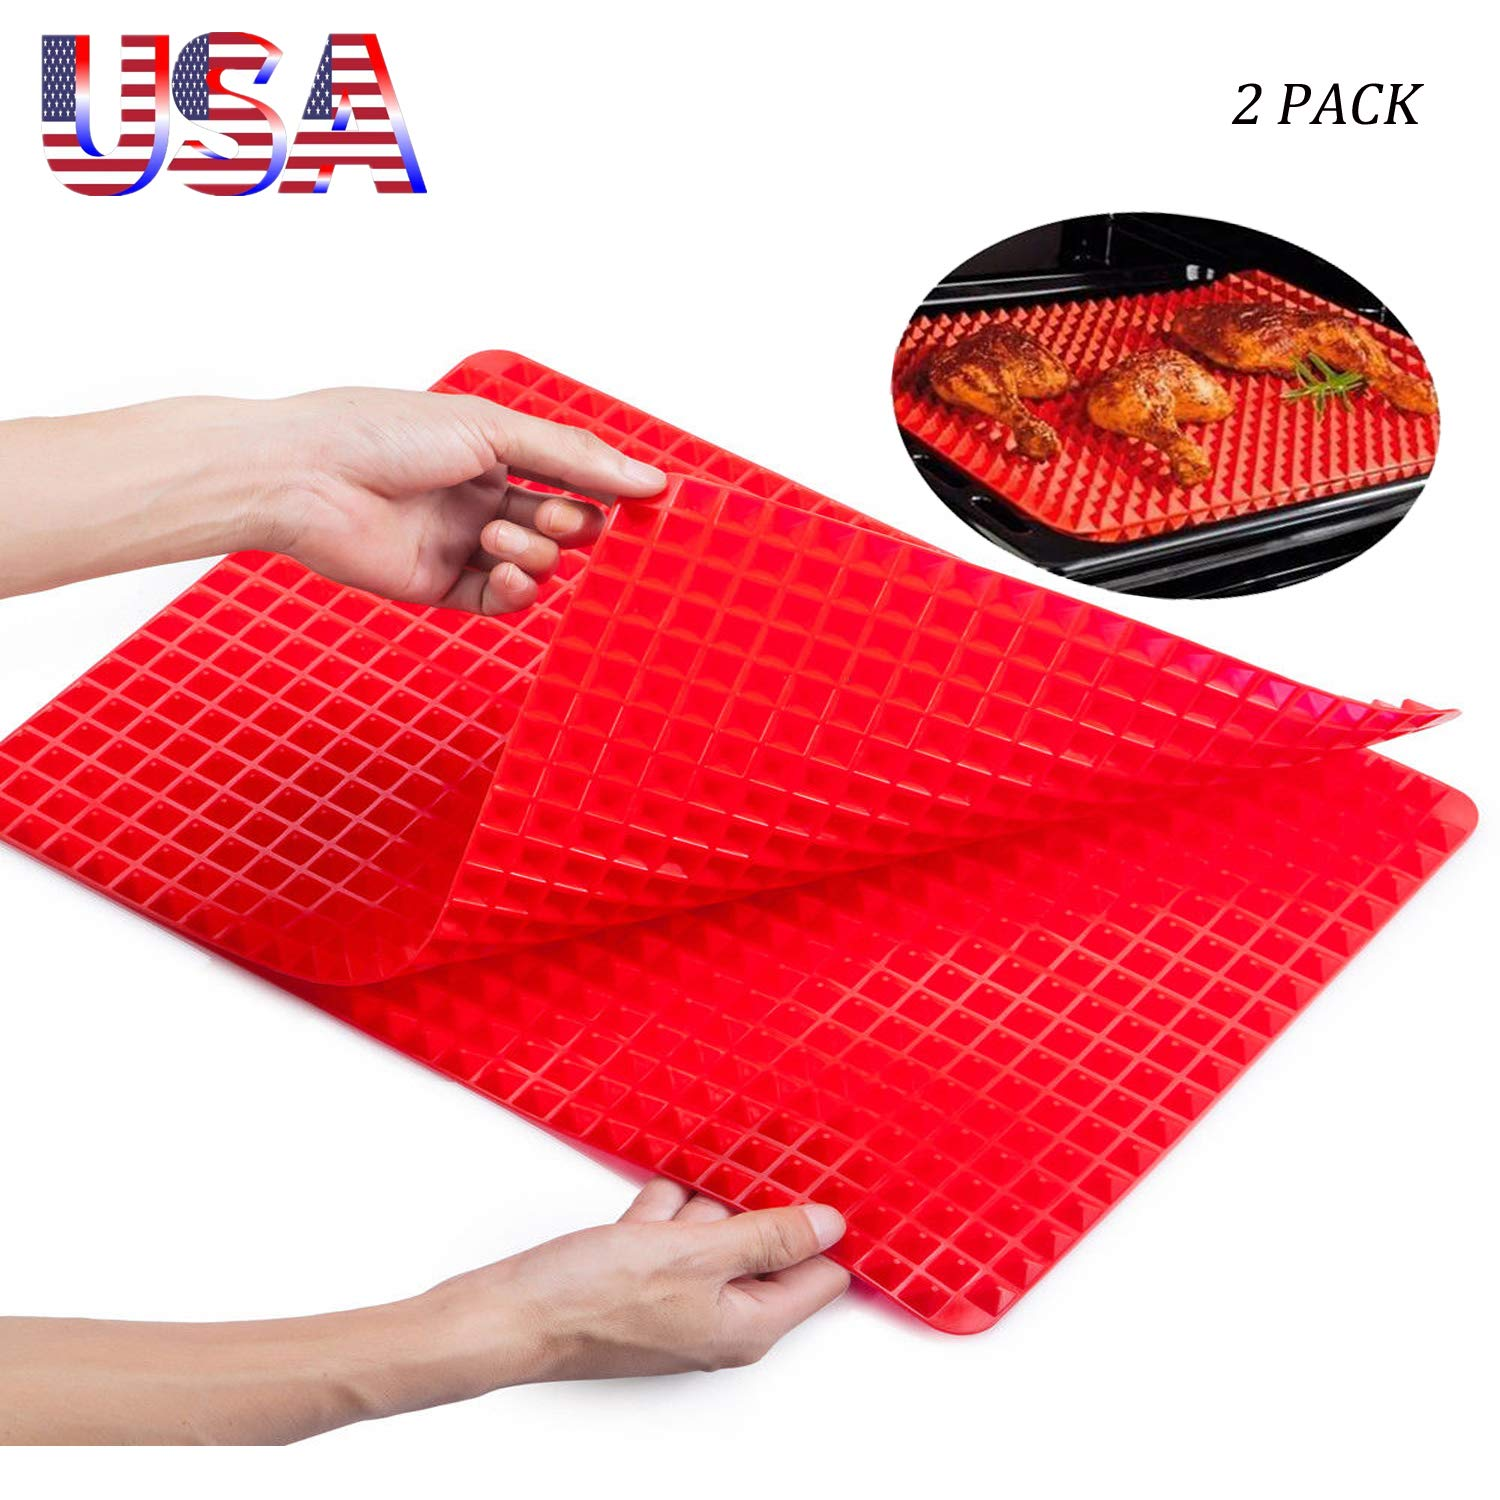 Silicone Pyramid Baking Mat Cooking Pan Value 2 Pack in 2 Sizes, Non-Stick Healthy Food Grade Fat Reducing Sheet For Oven Grilling BBQ (1Pcs&1717cm+1Pcs&39.527.5cm)